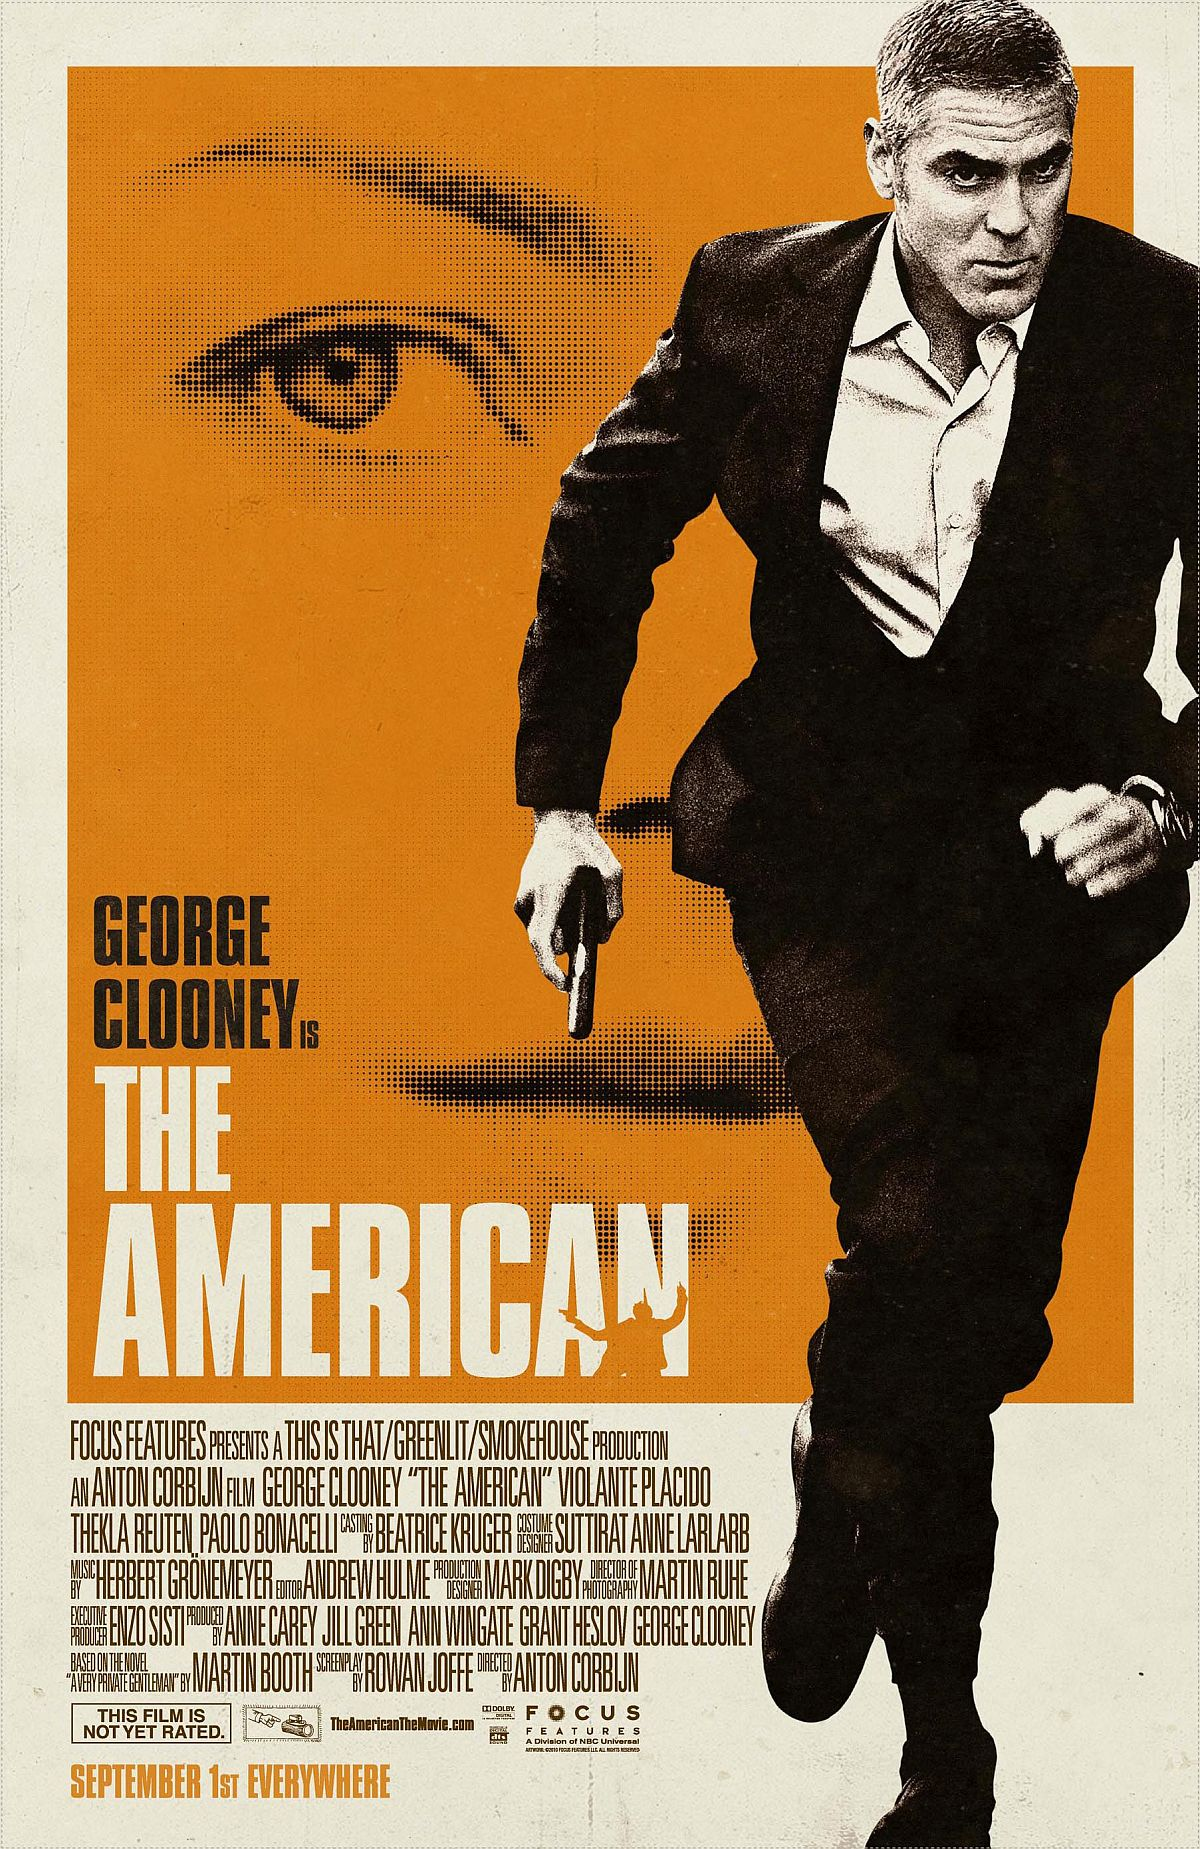 The American with George Clooney